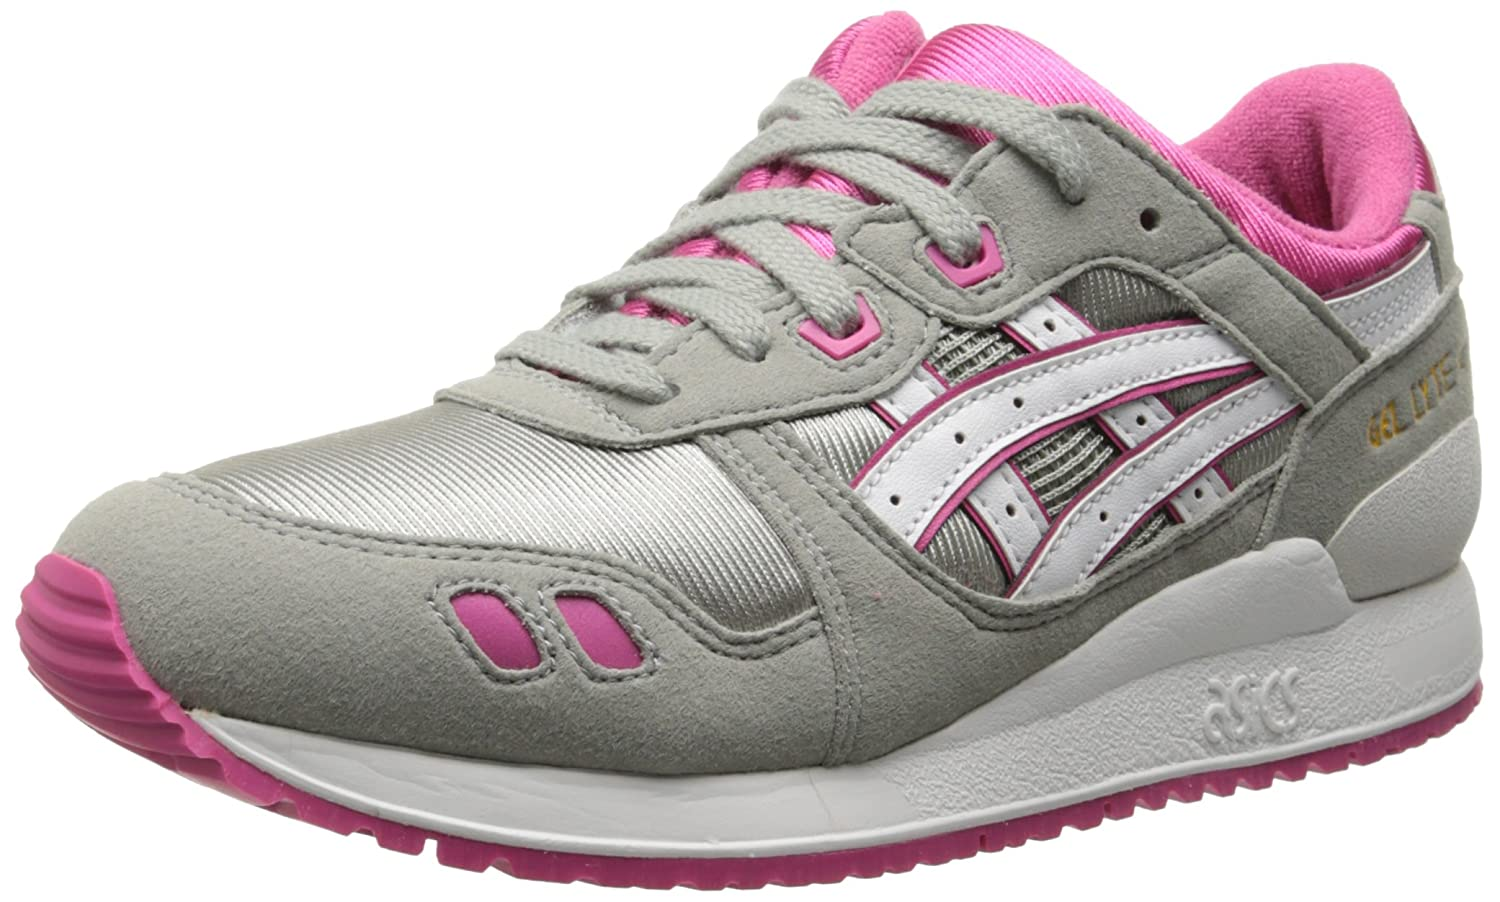 pas cher pour réduction 42dc0 f6592 ASICS Tiger GEL LYTE III GS Retro Running Sneaker (Big Kid)